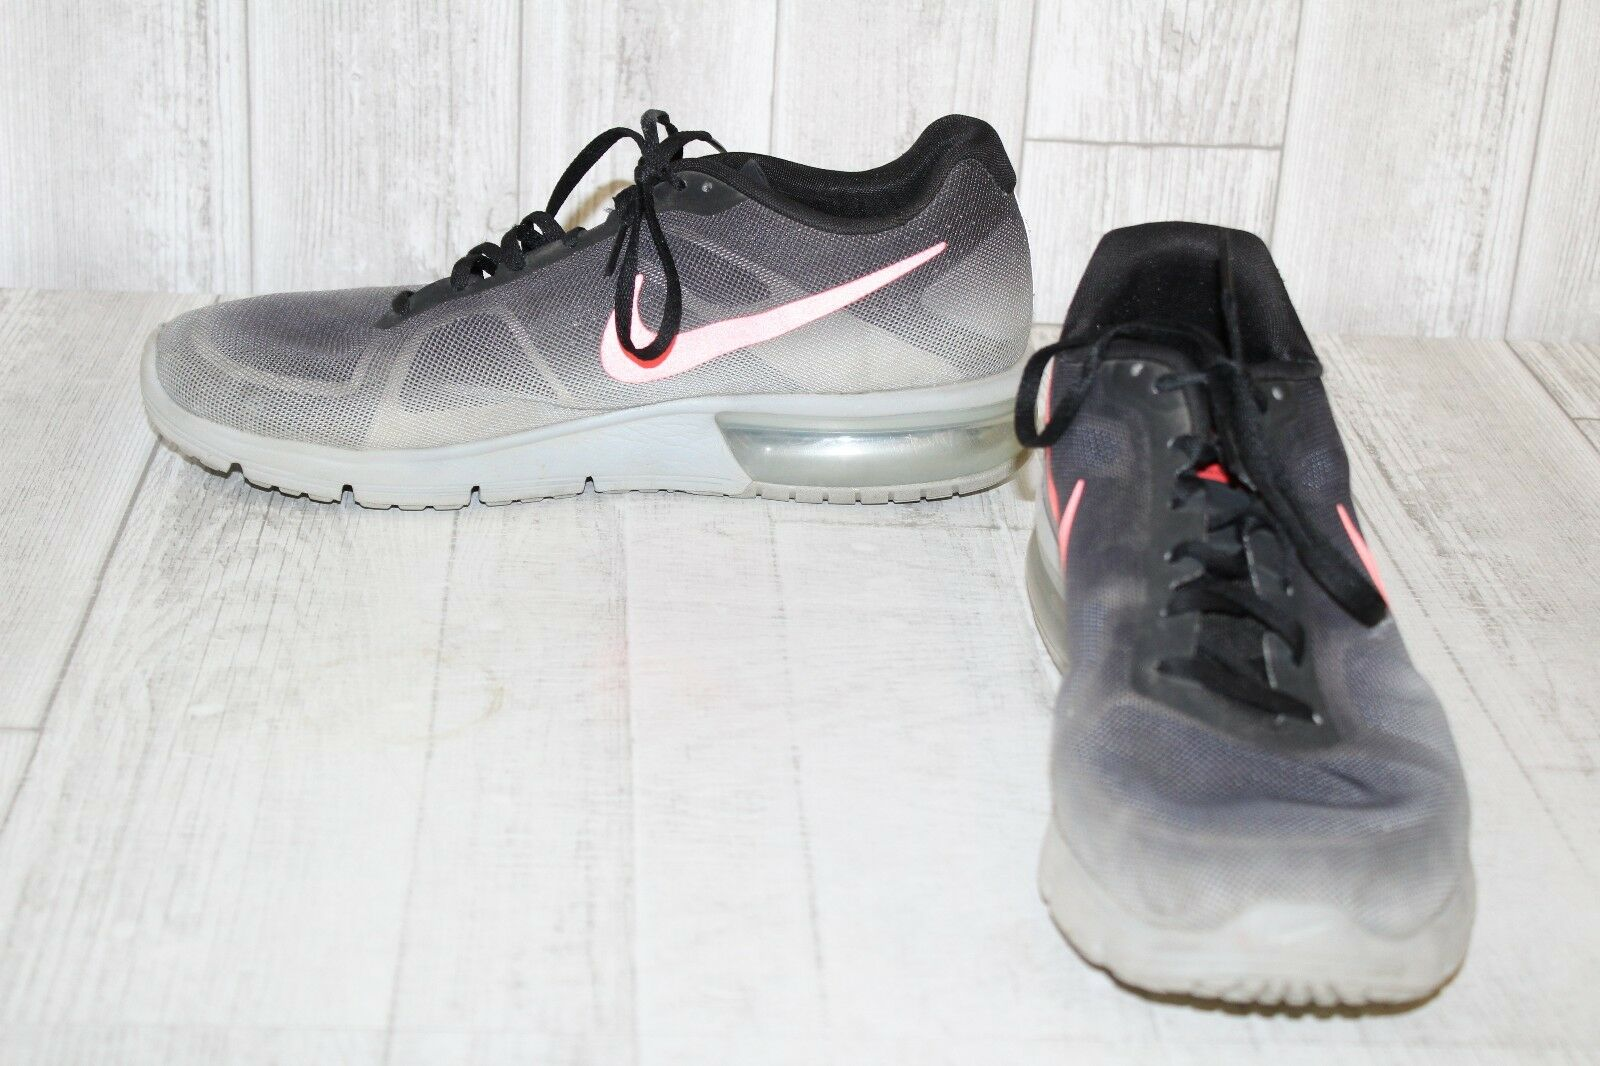 AIR MAX SEQUENT PERFORMANCE RUNNING SHOE - Men's Comfortable